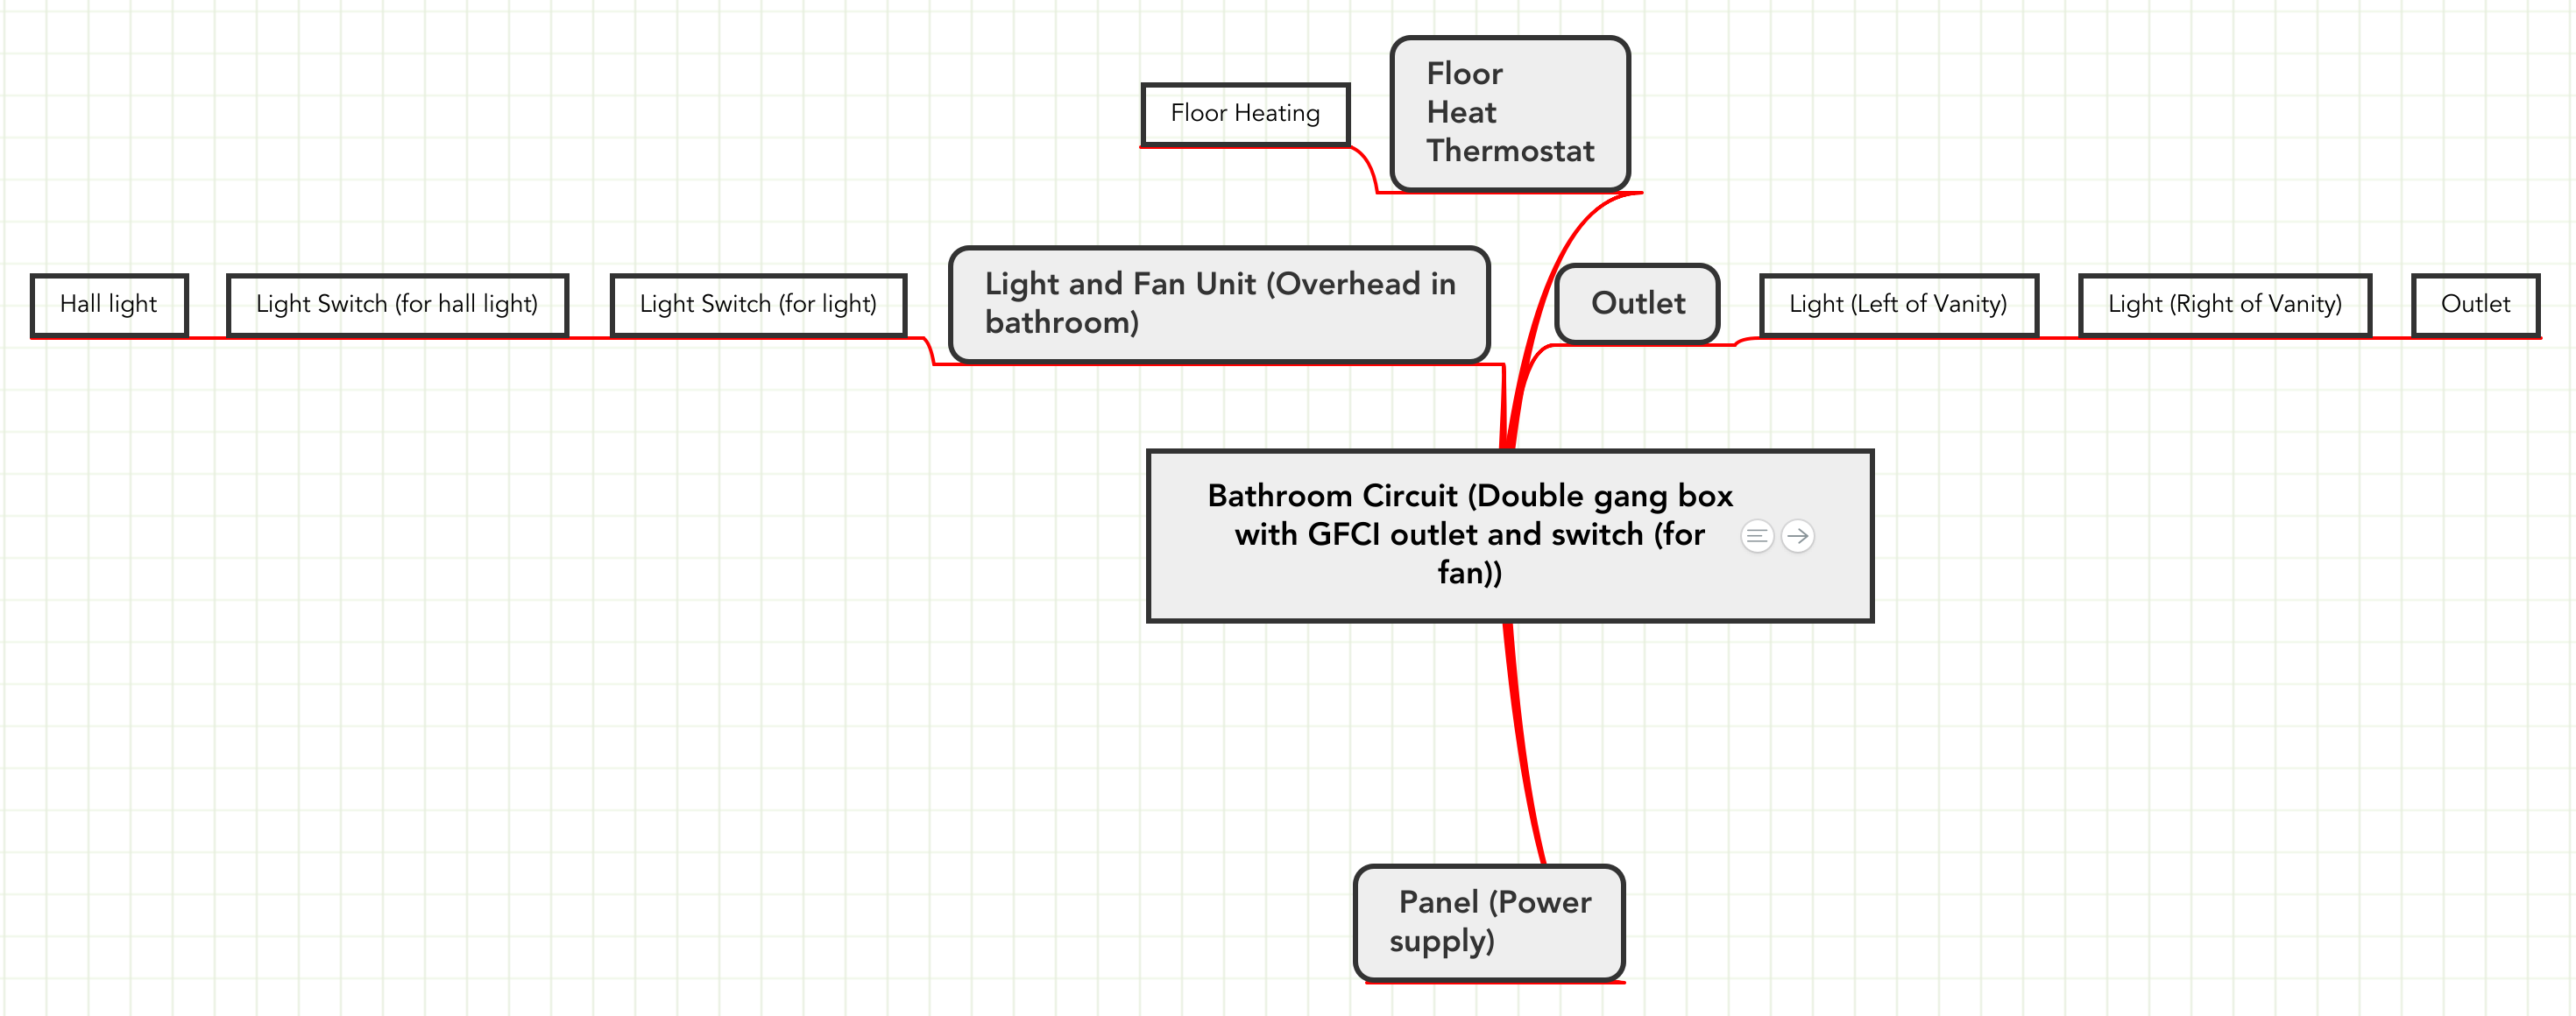 Switch Box Wiring Diagram Library Schematic For Bathroom Light Fan Gfci In A Two Gang House Grounding